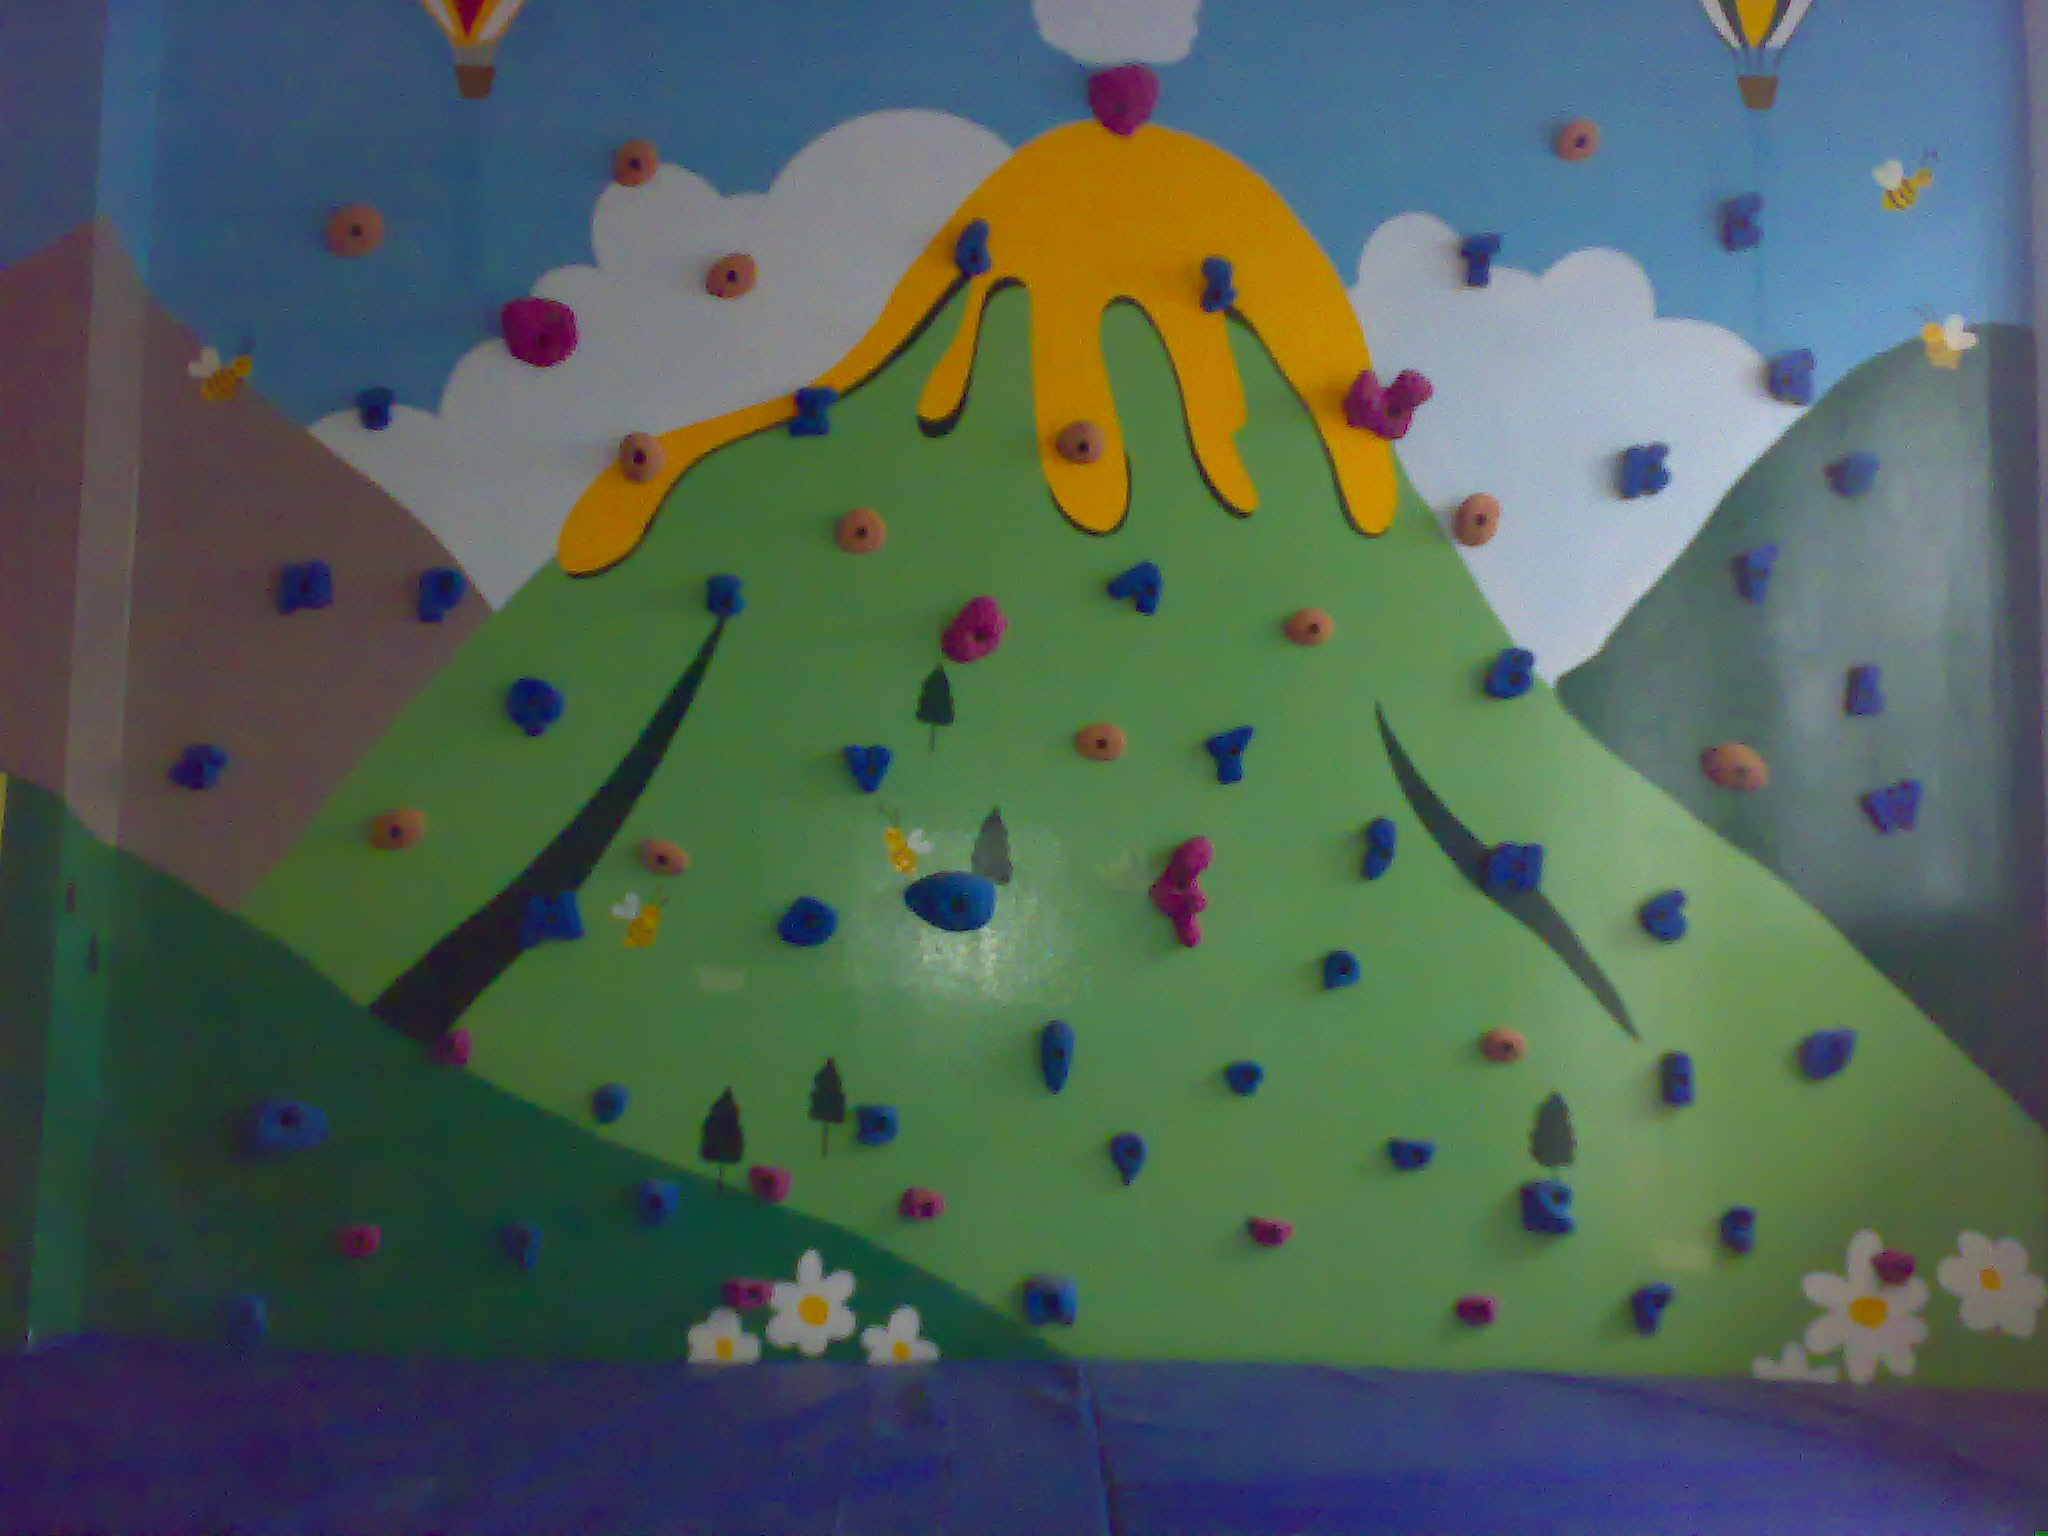 A supplier of rock climbing walls, climbing gear, safety gear for work at height